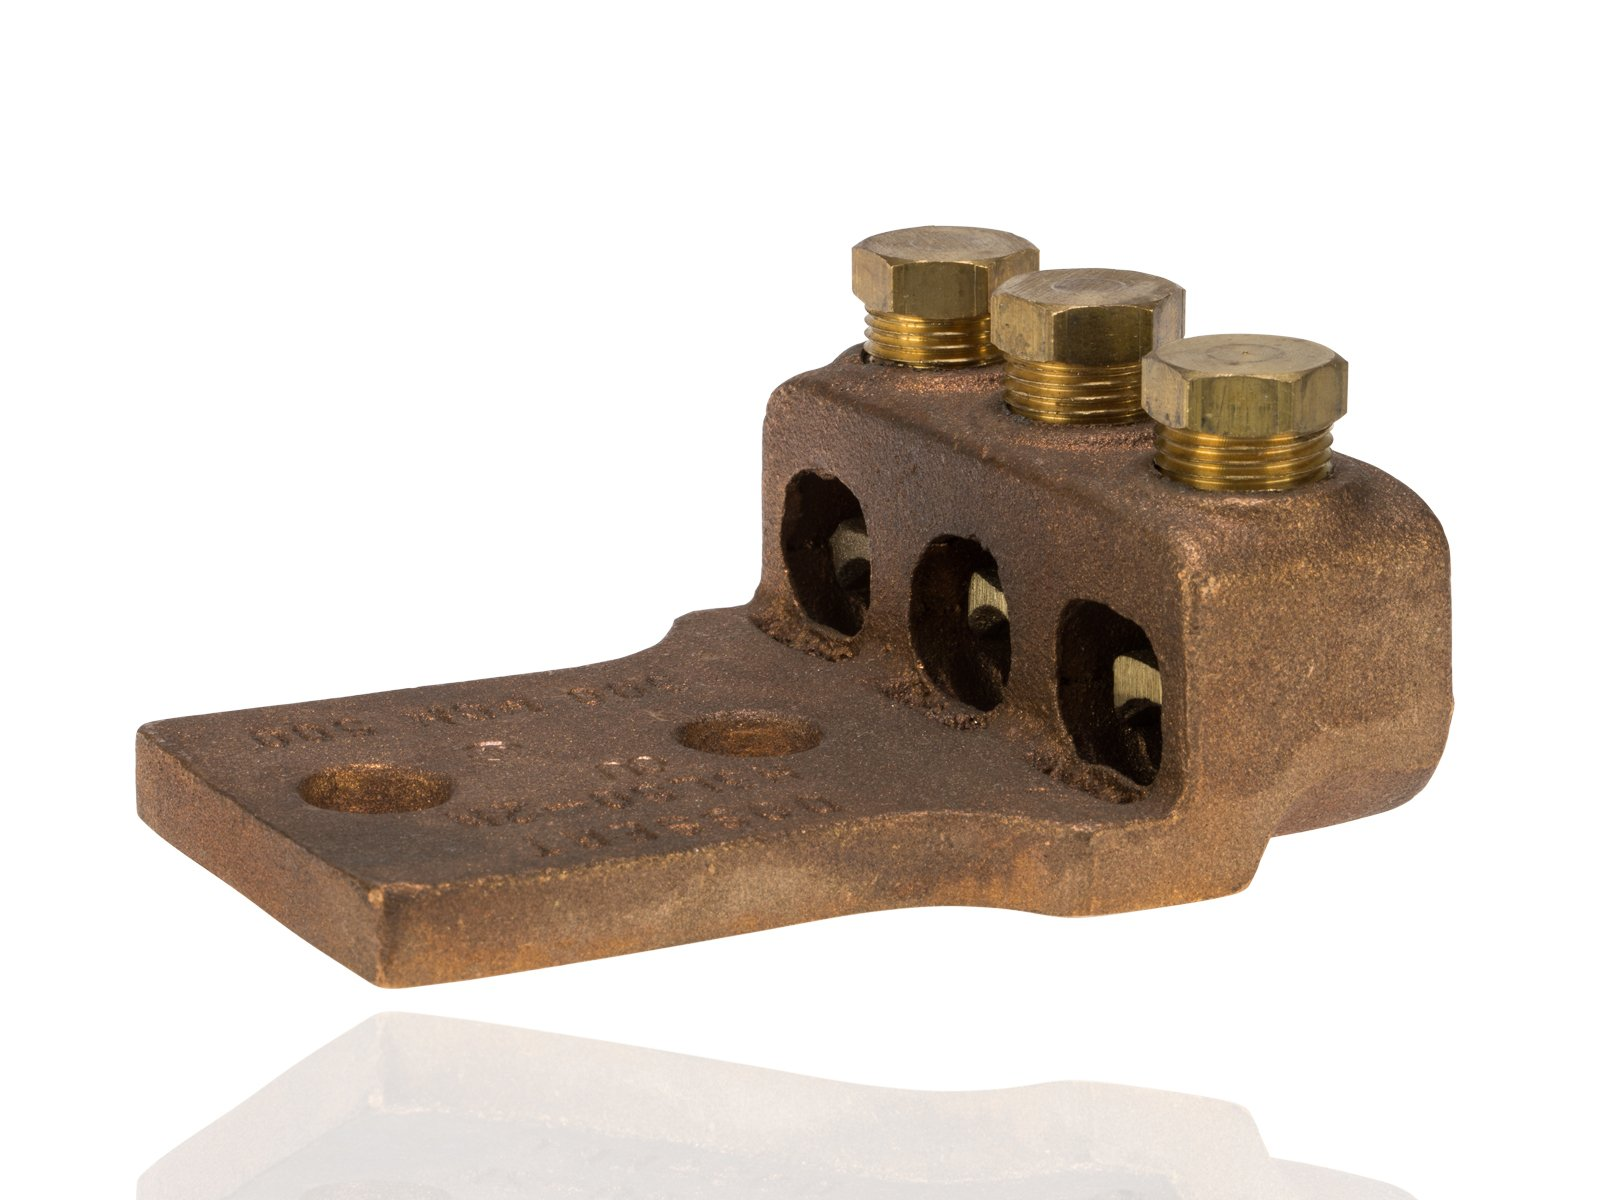 Split Bolt, Post and Tap Connector, Type TL Copper and Cast Bronze Terminal Lug, 300 MCM - 500 MCM Wire Range, 1/2'' Bolt Hole Size, 2 Holes, 1200 Amp Nec, 3.625'' Width, 1.5'' Height, 4.5'' Length by NSI